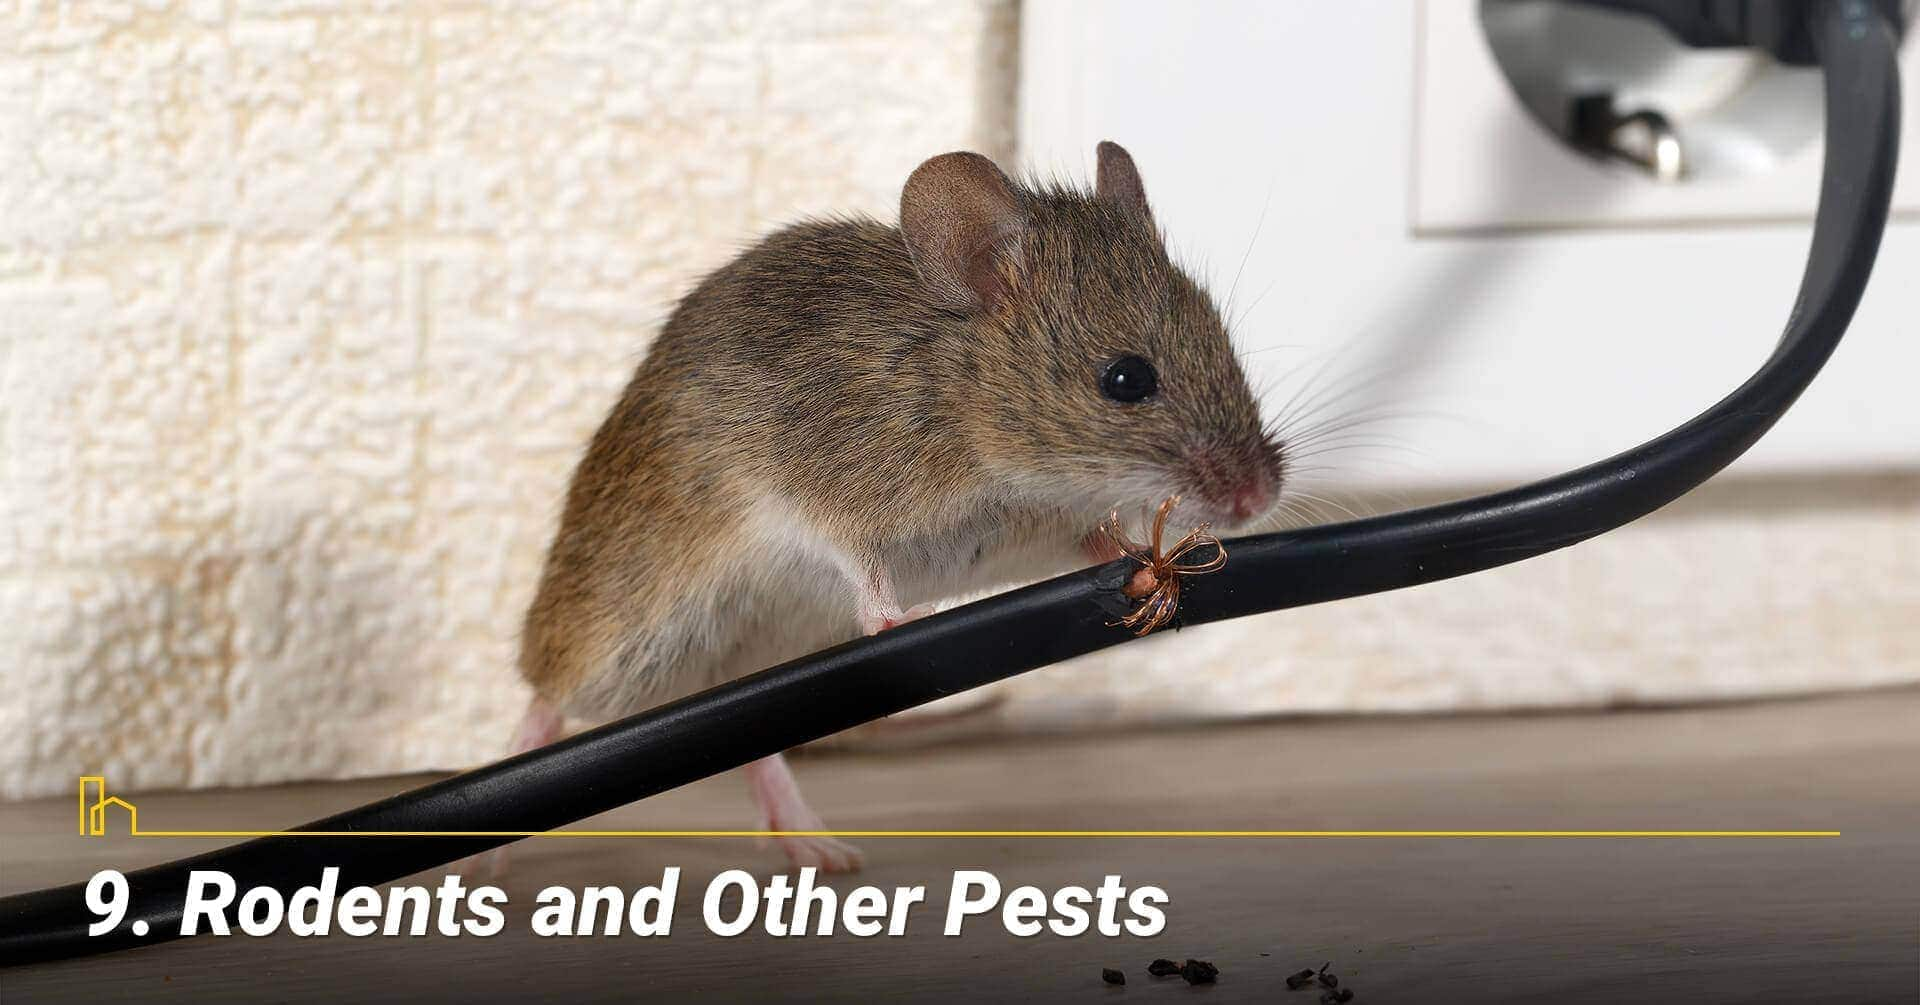 Rodents and Other Pests